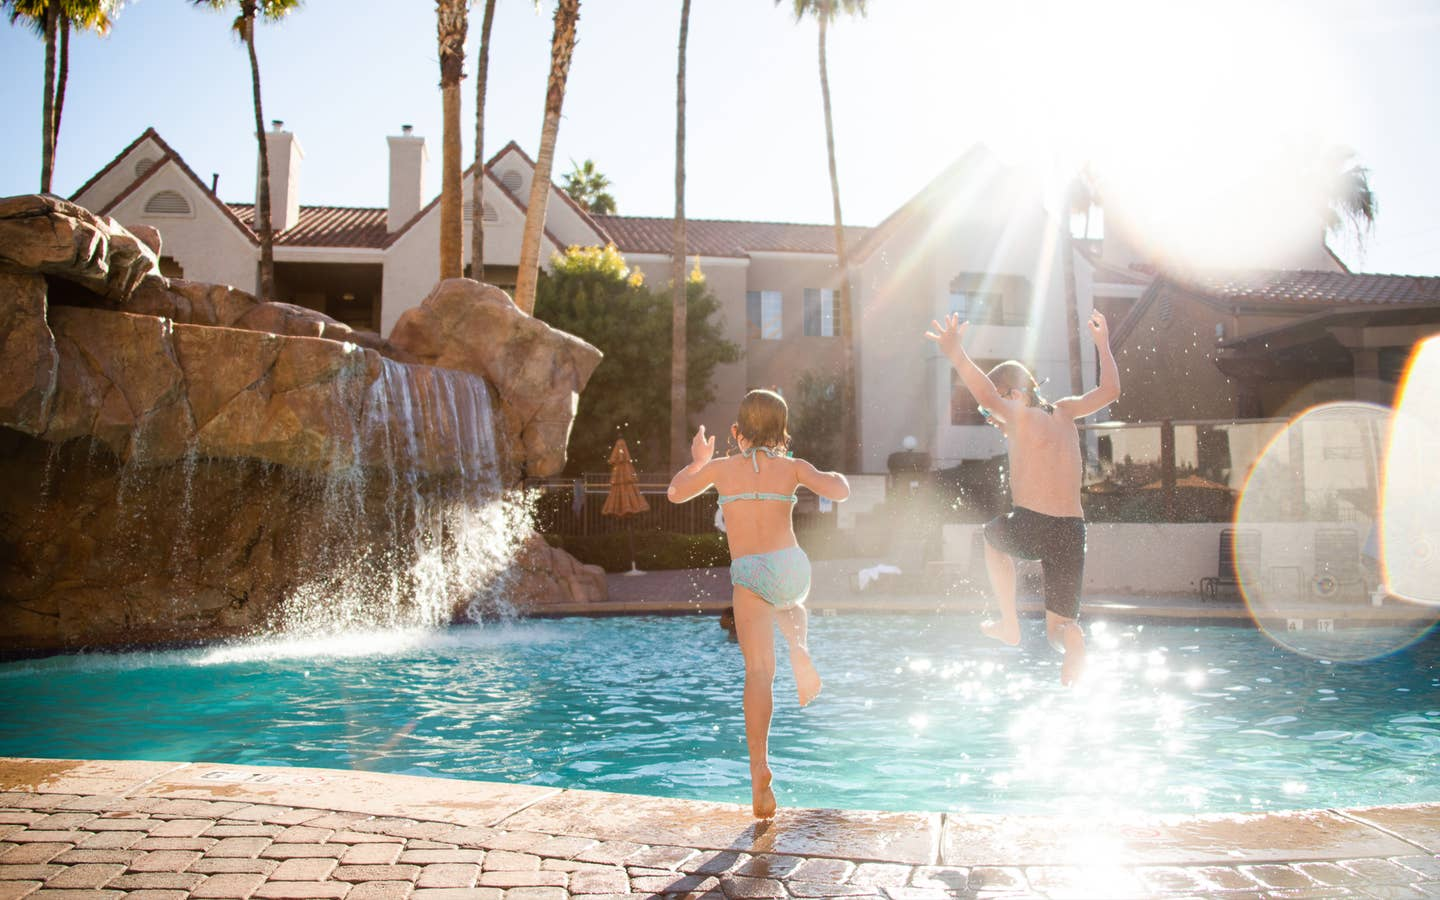 Two children jumping in outdoor pool with waterfall at Desert Club Resort in Las Vegas, Nevada.